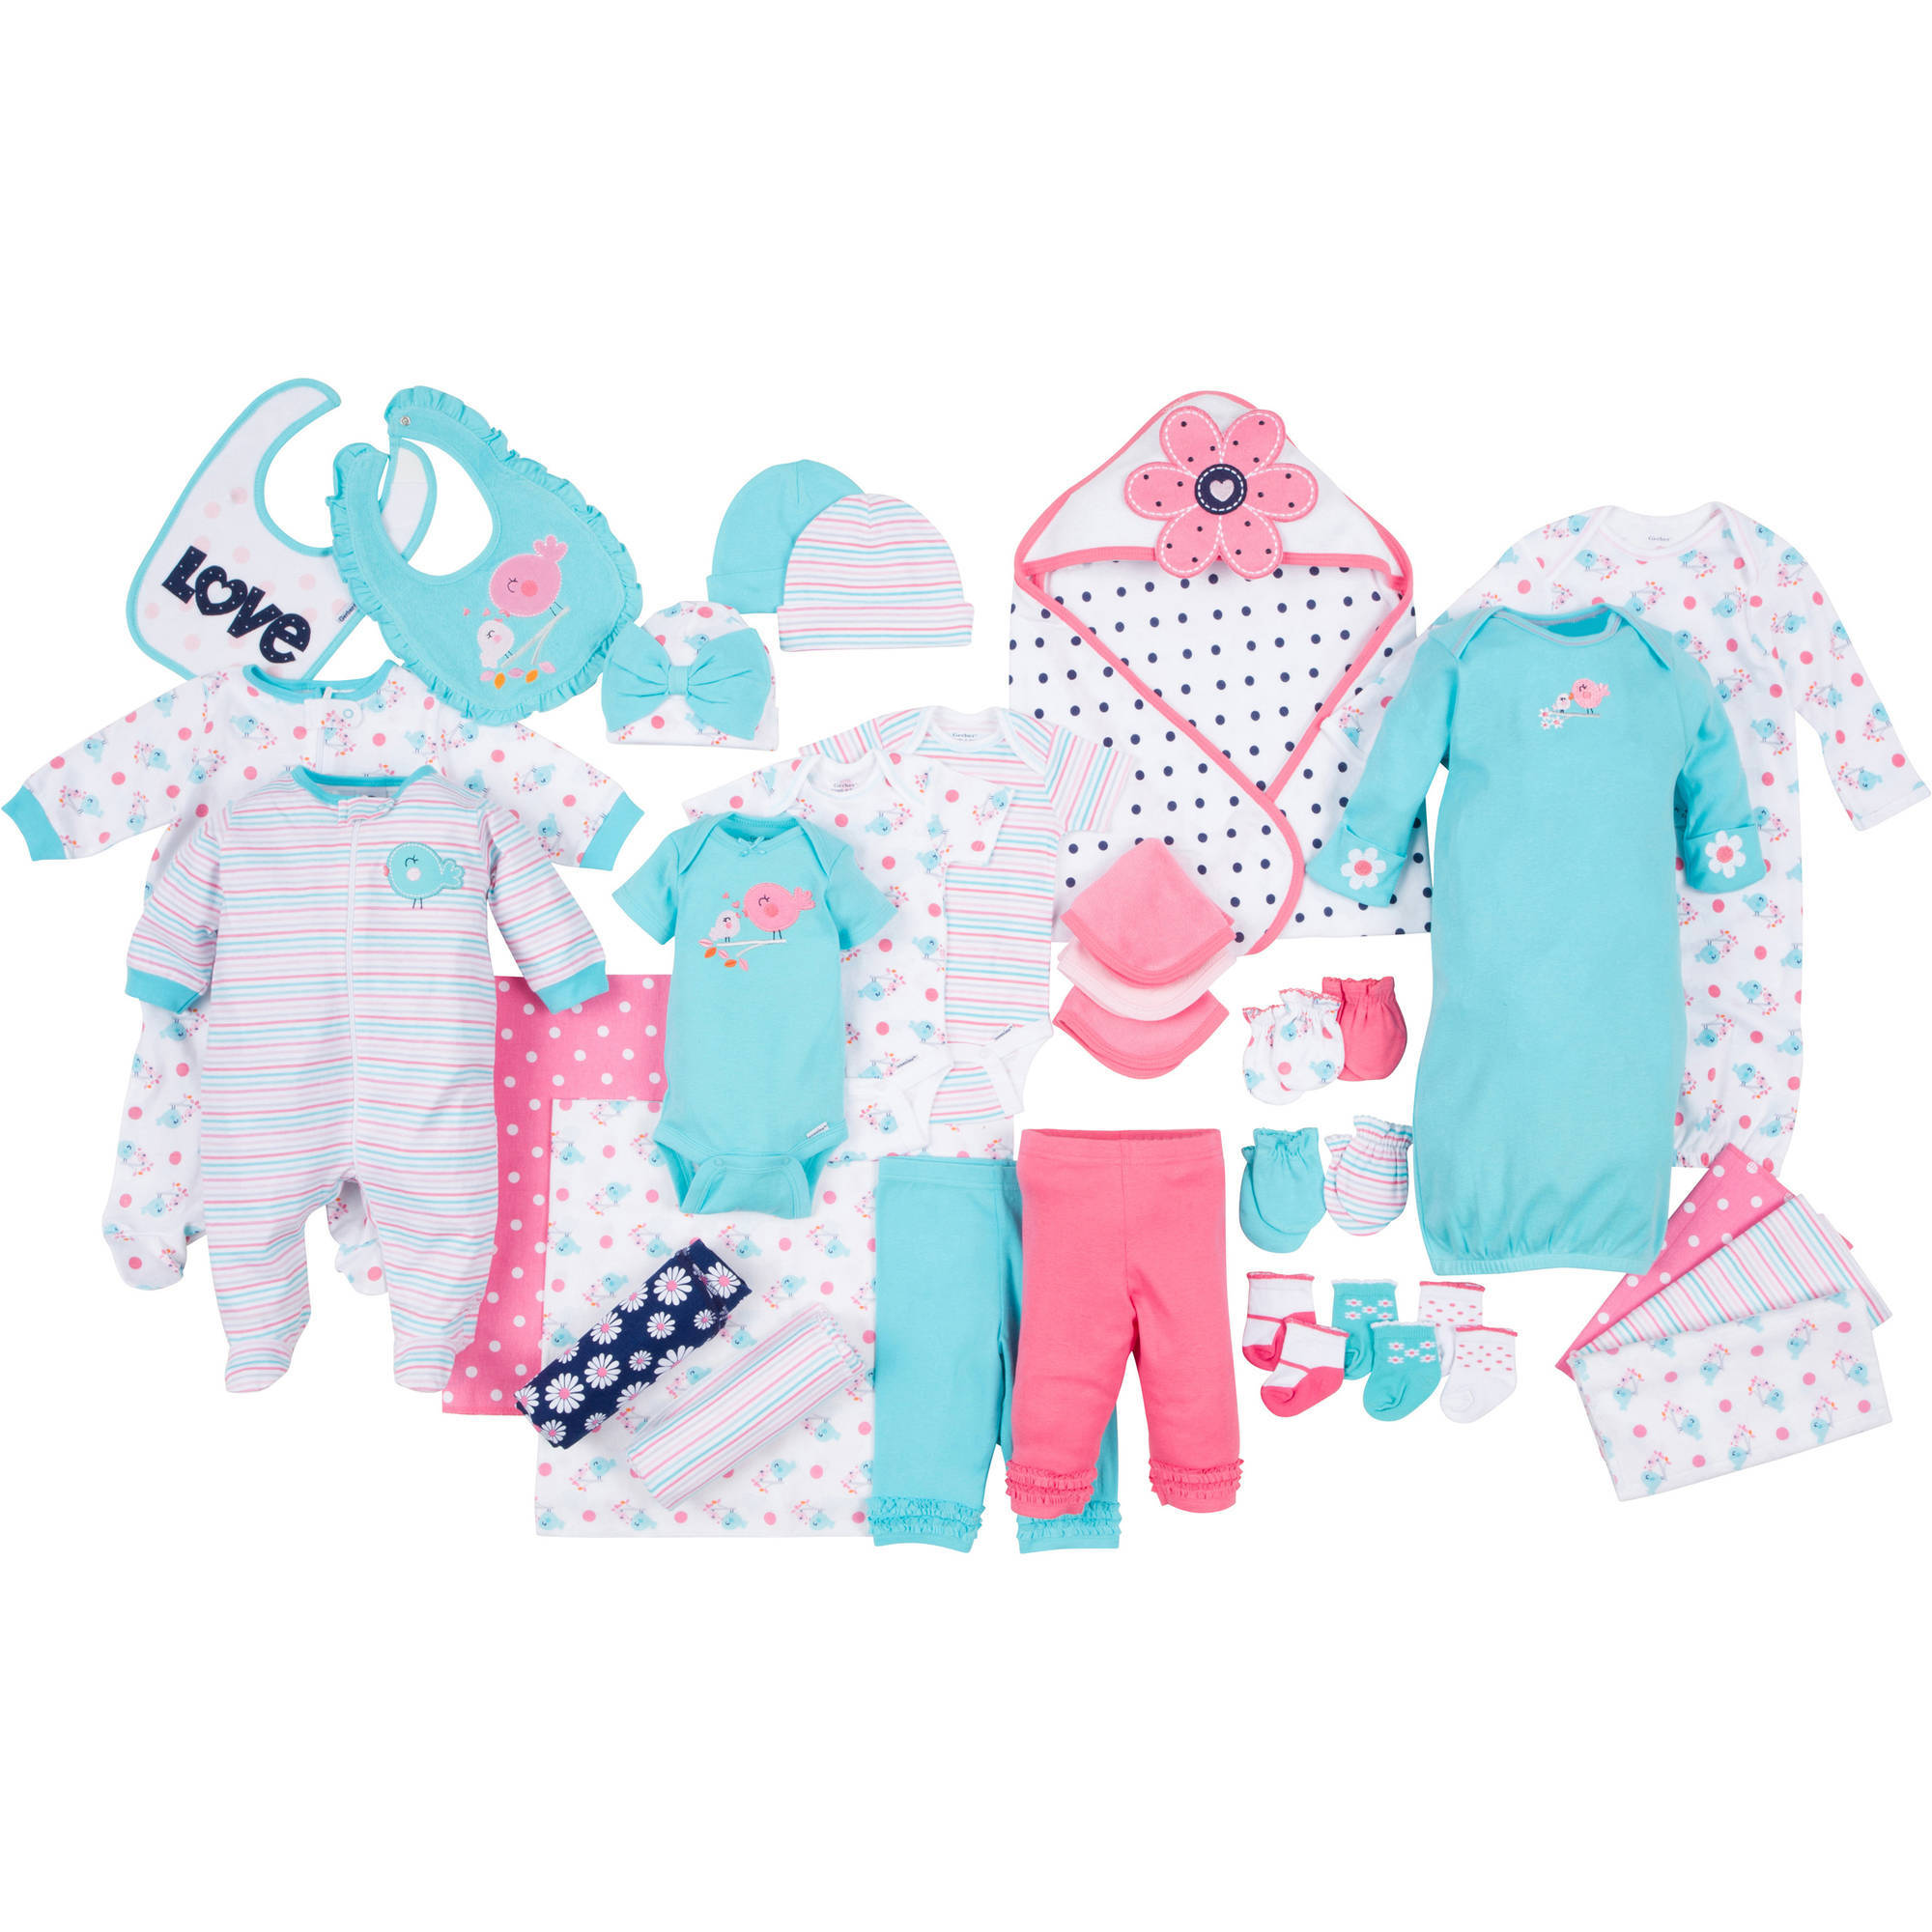 Gerber Newborn Baby Girl Perfect Baby Shower Gift 33-Piece Layette Set, Ages 0-3M